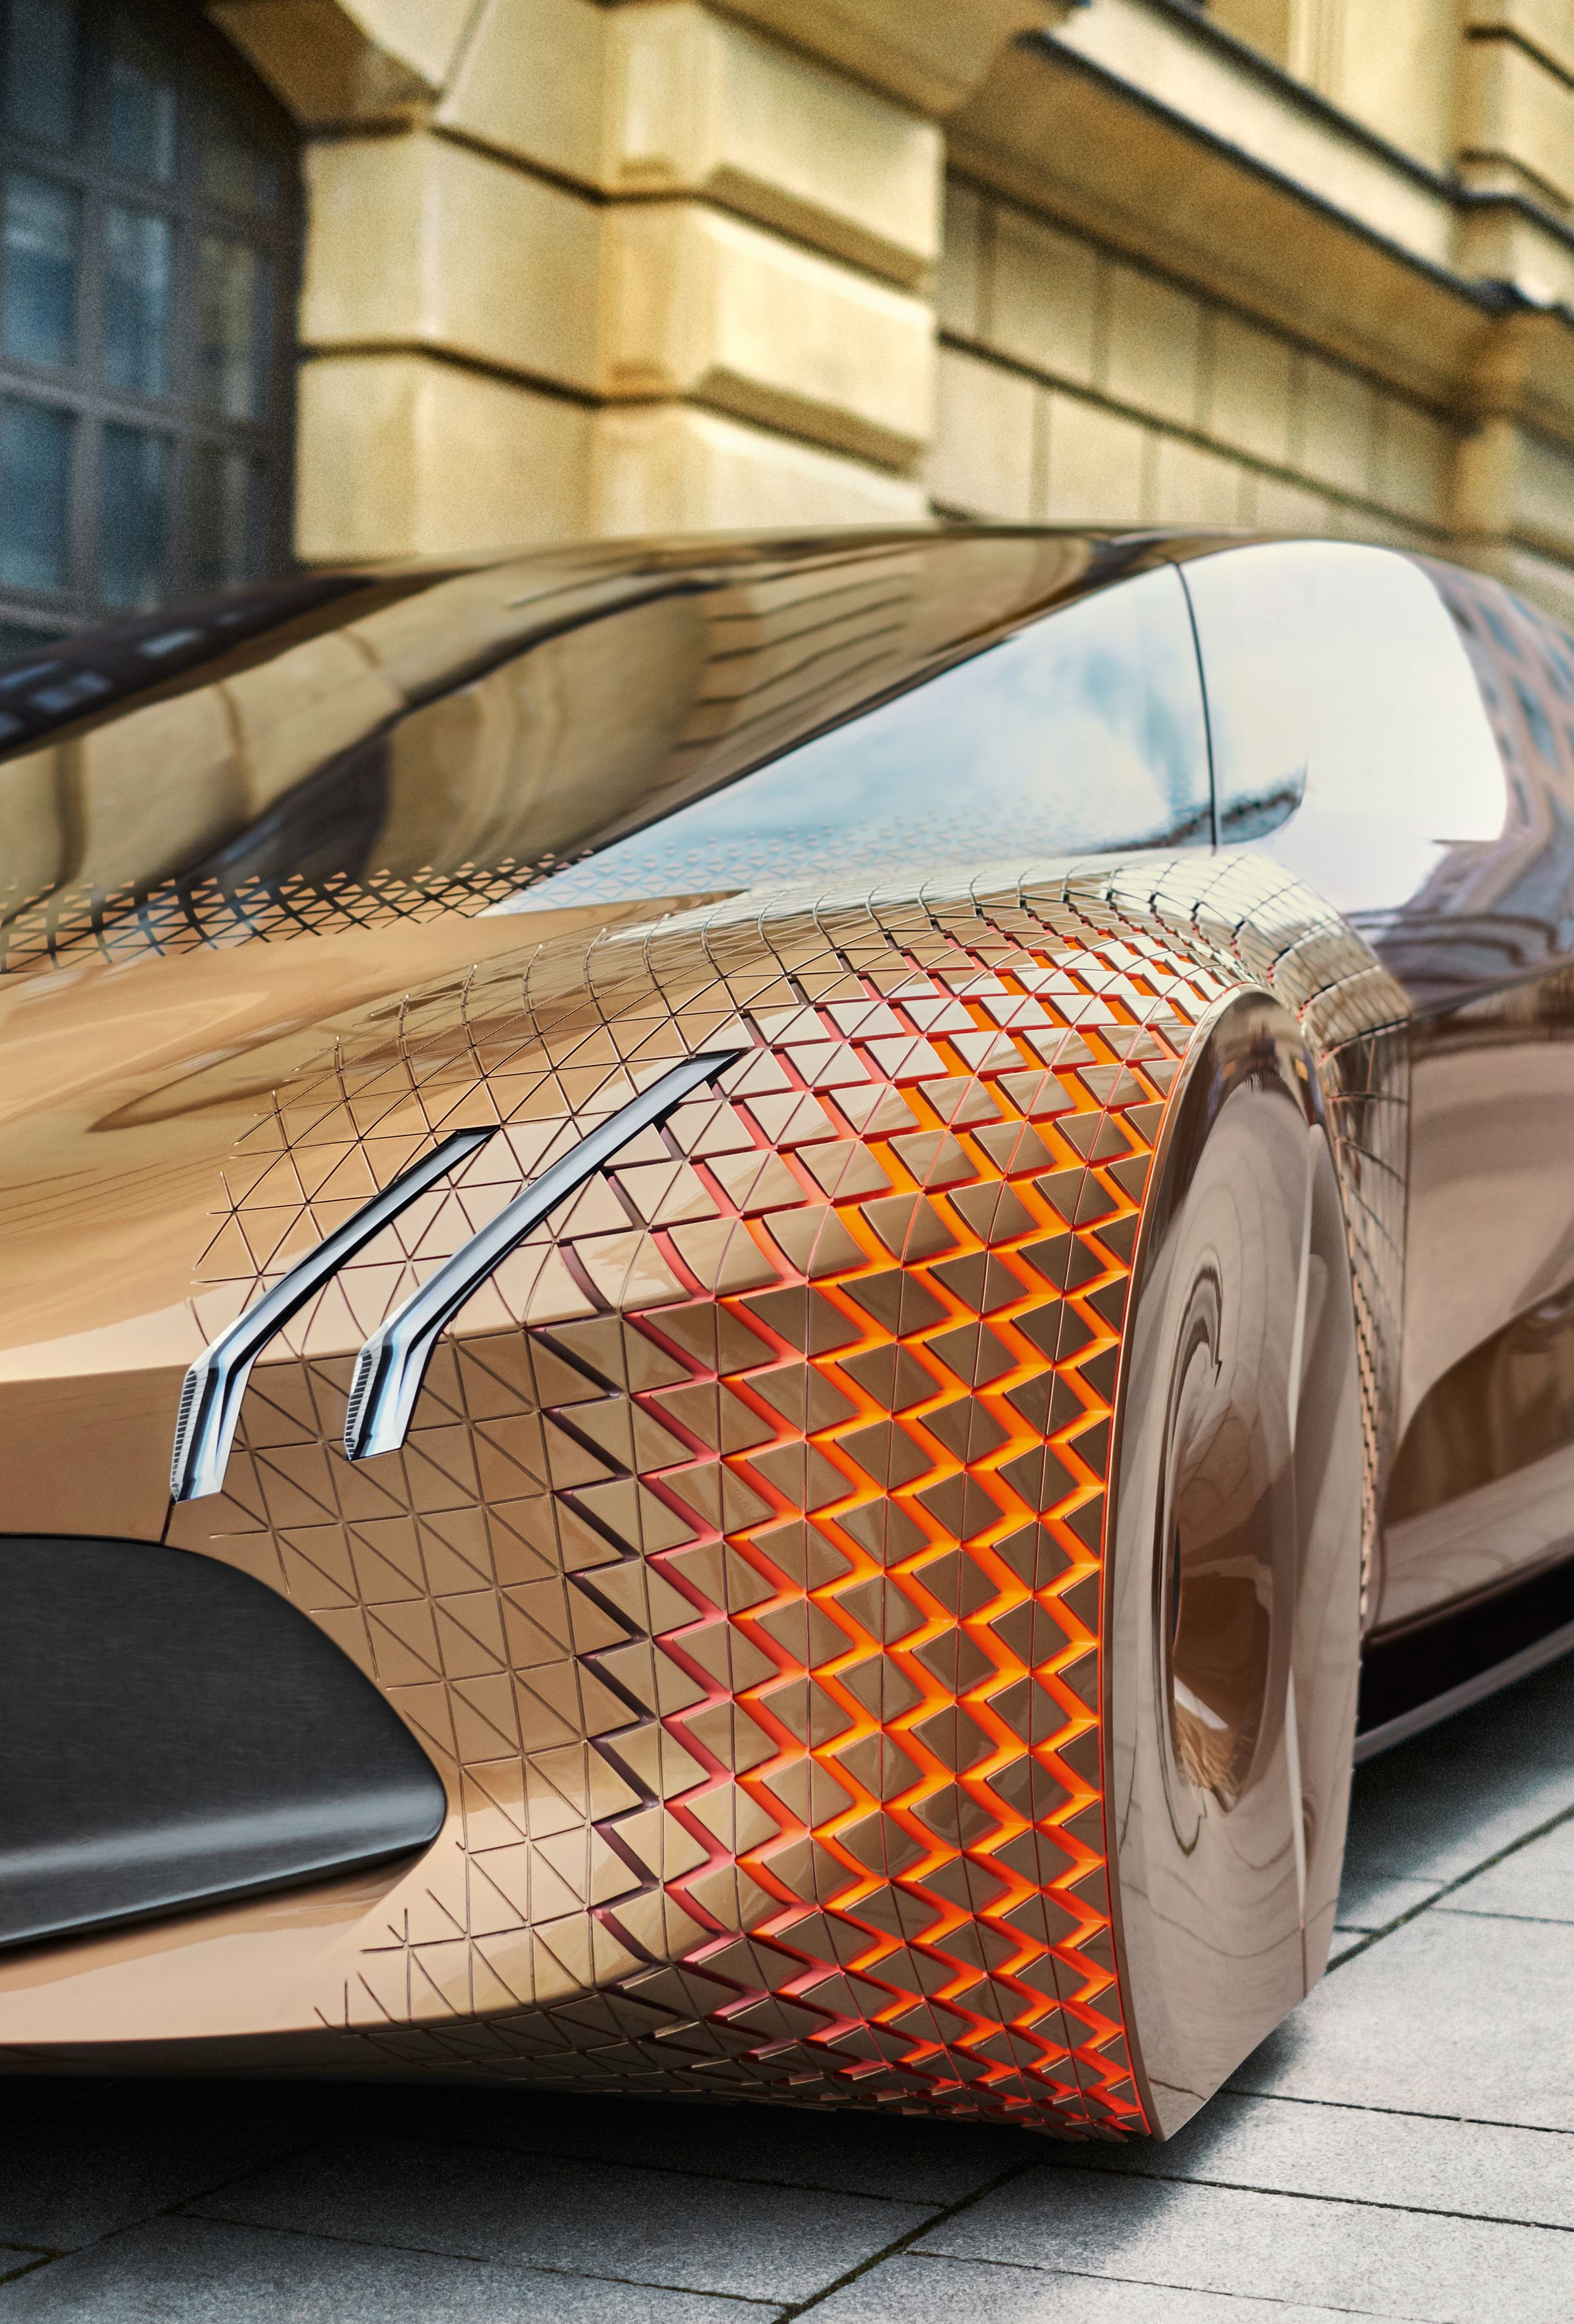 Bmw Vision Next100 Years Technology Future Live Life Love